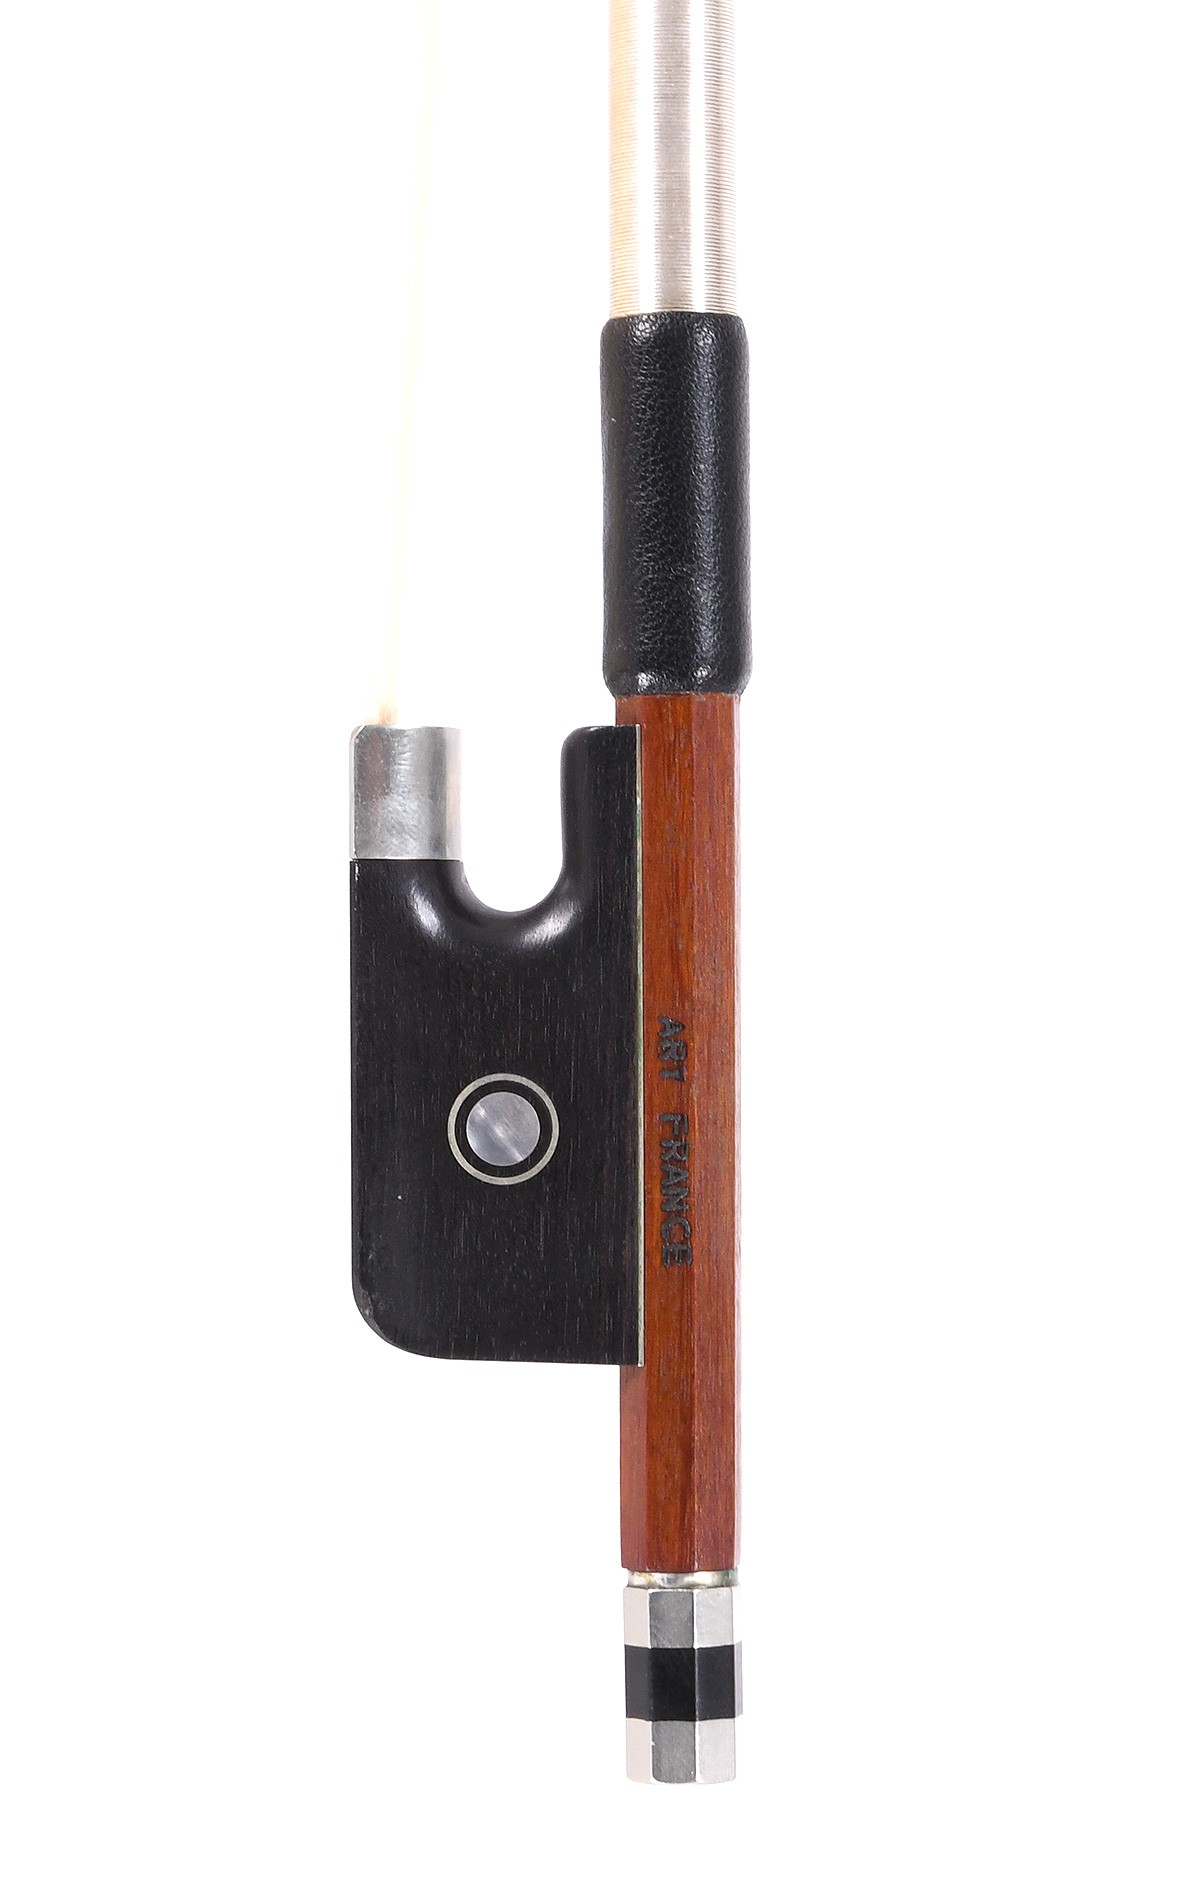 French cello bow by Ary France